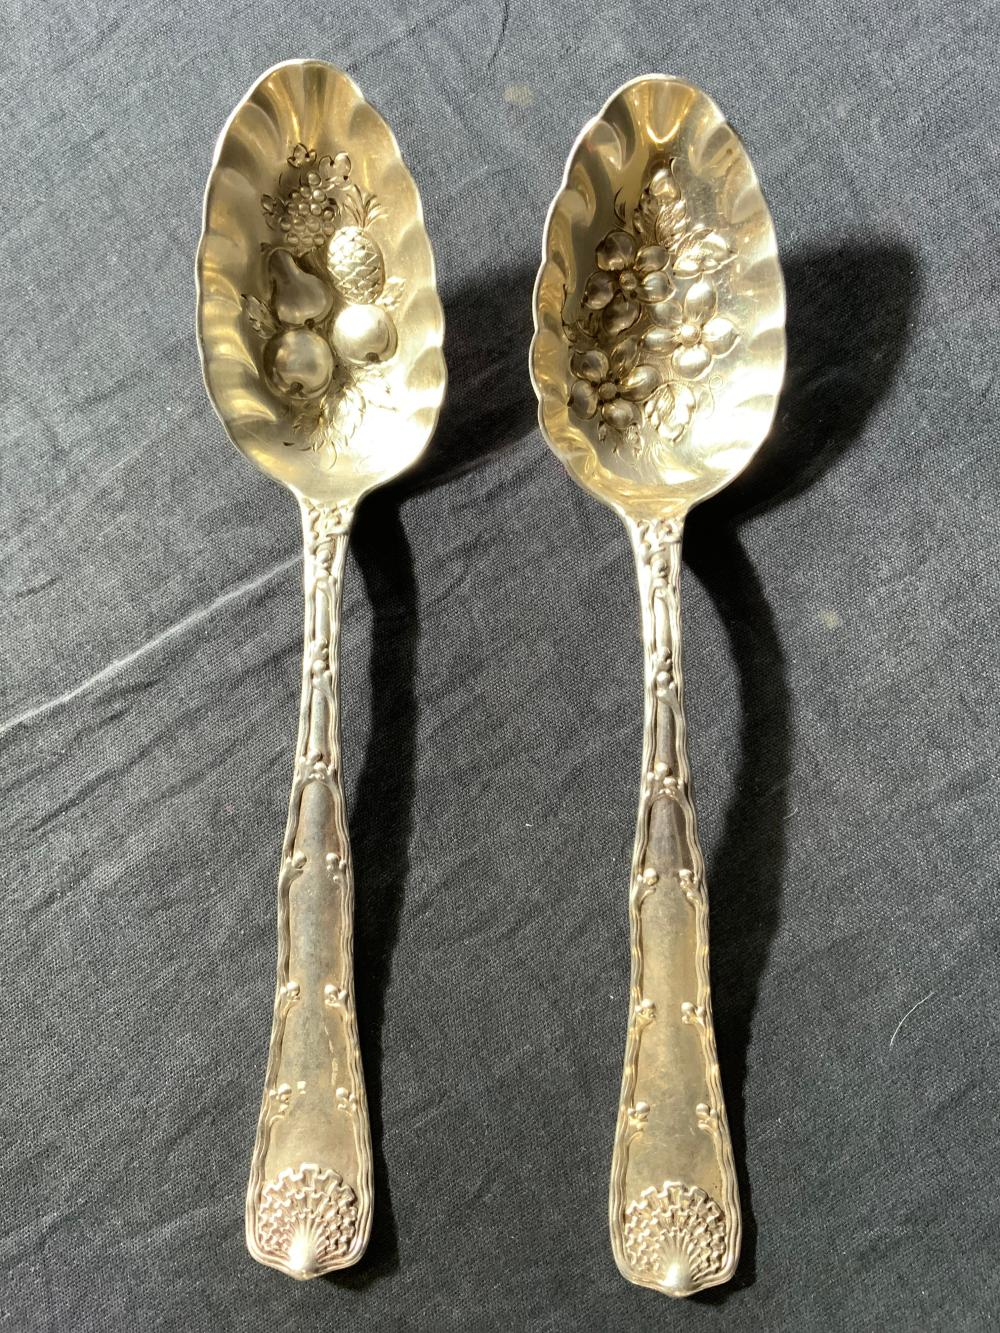 Lot 2 TIFFANY & CO Sterling Silver Spoons